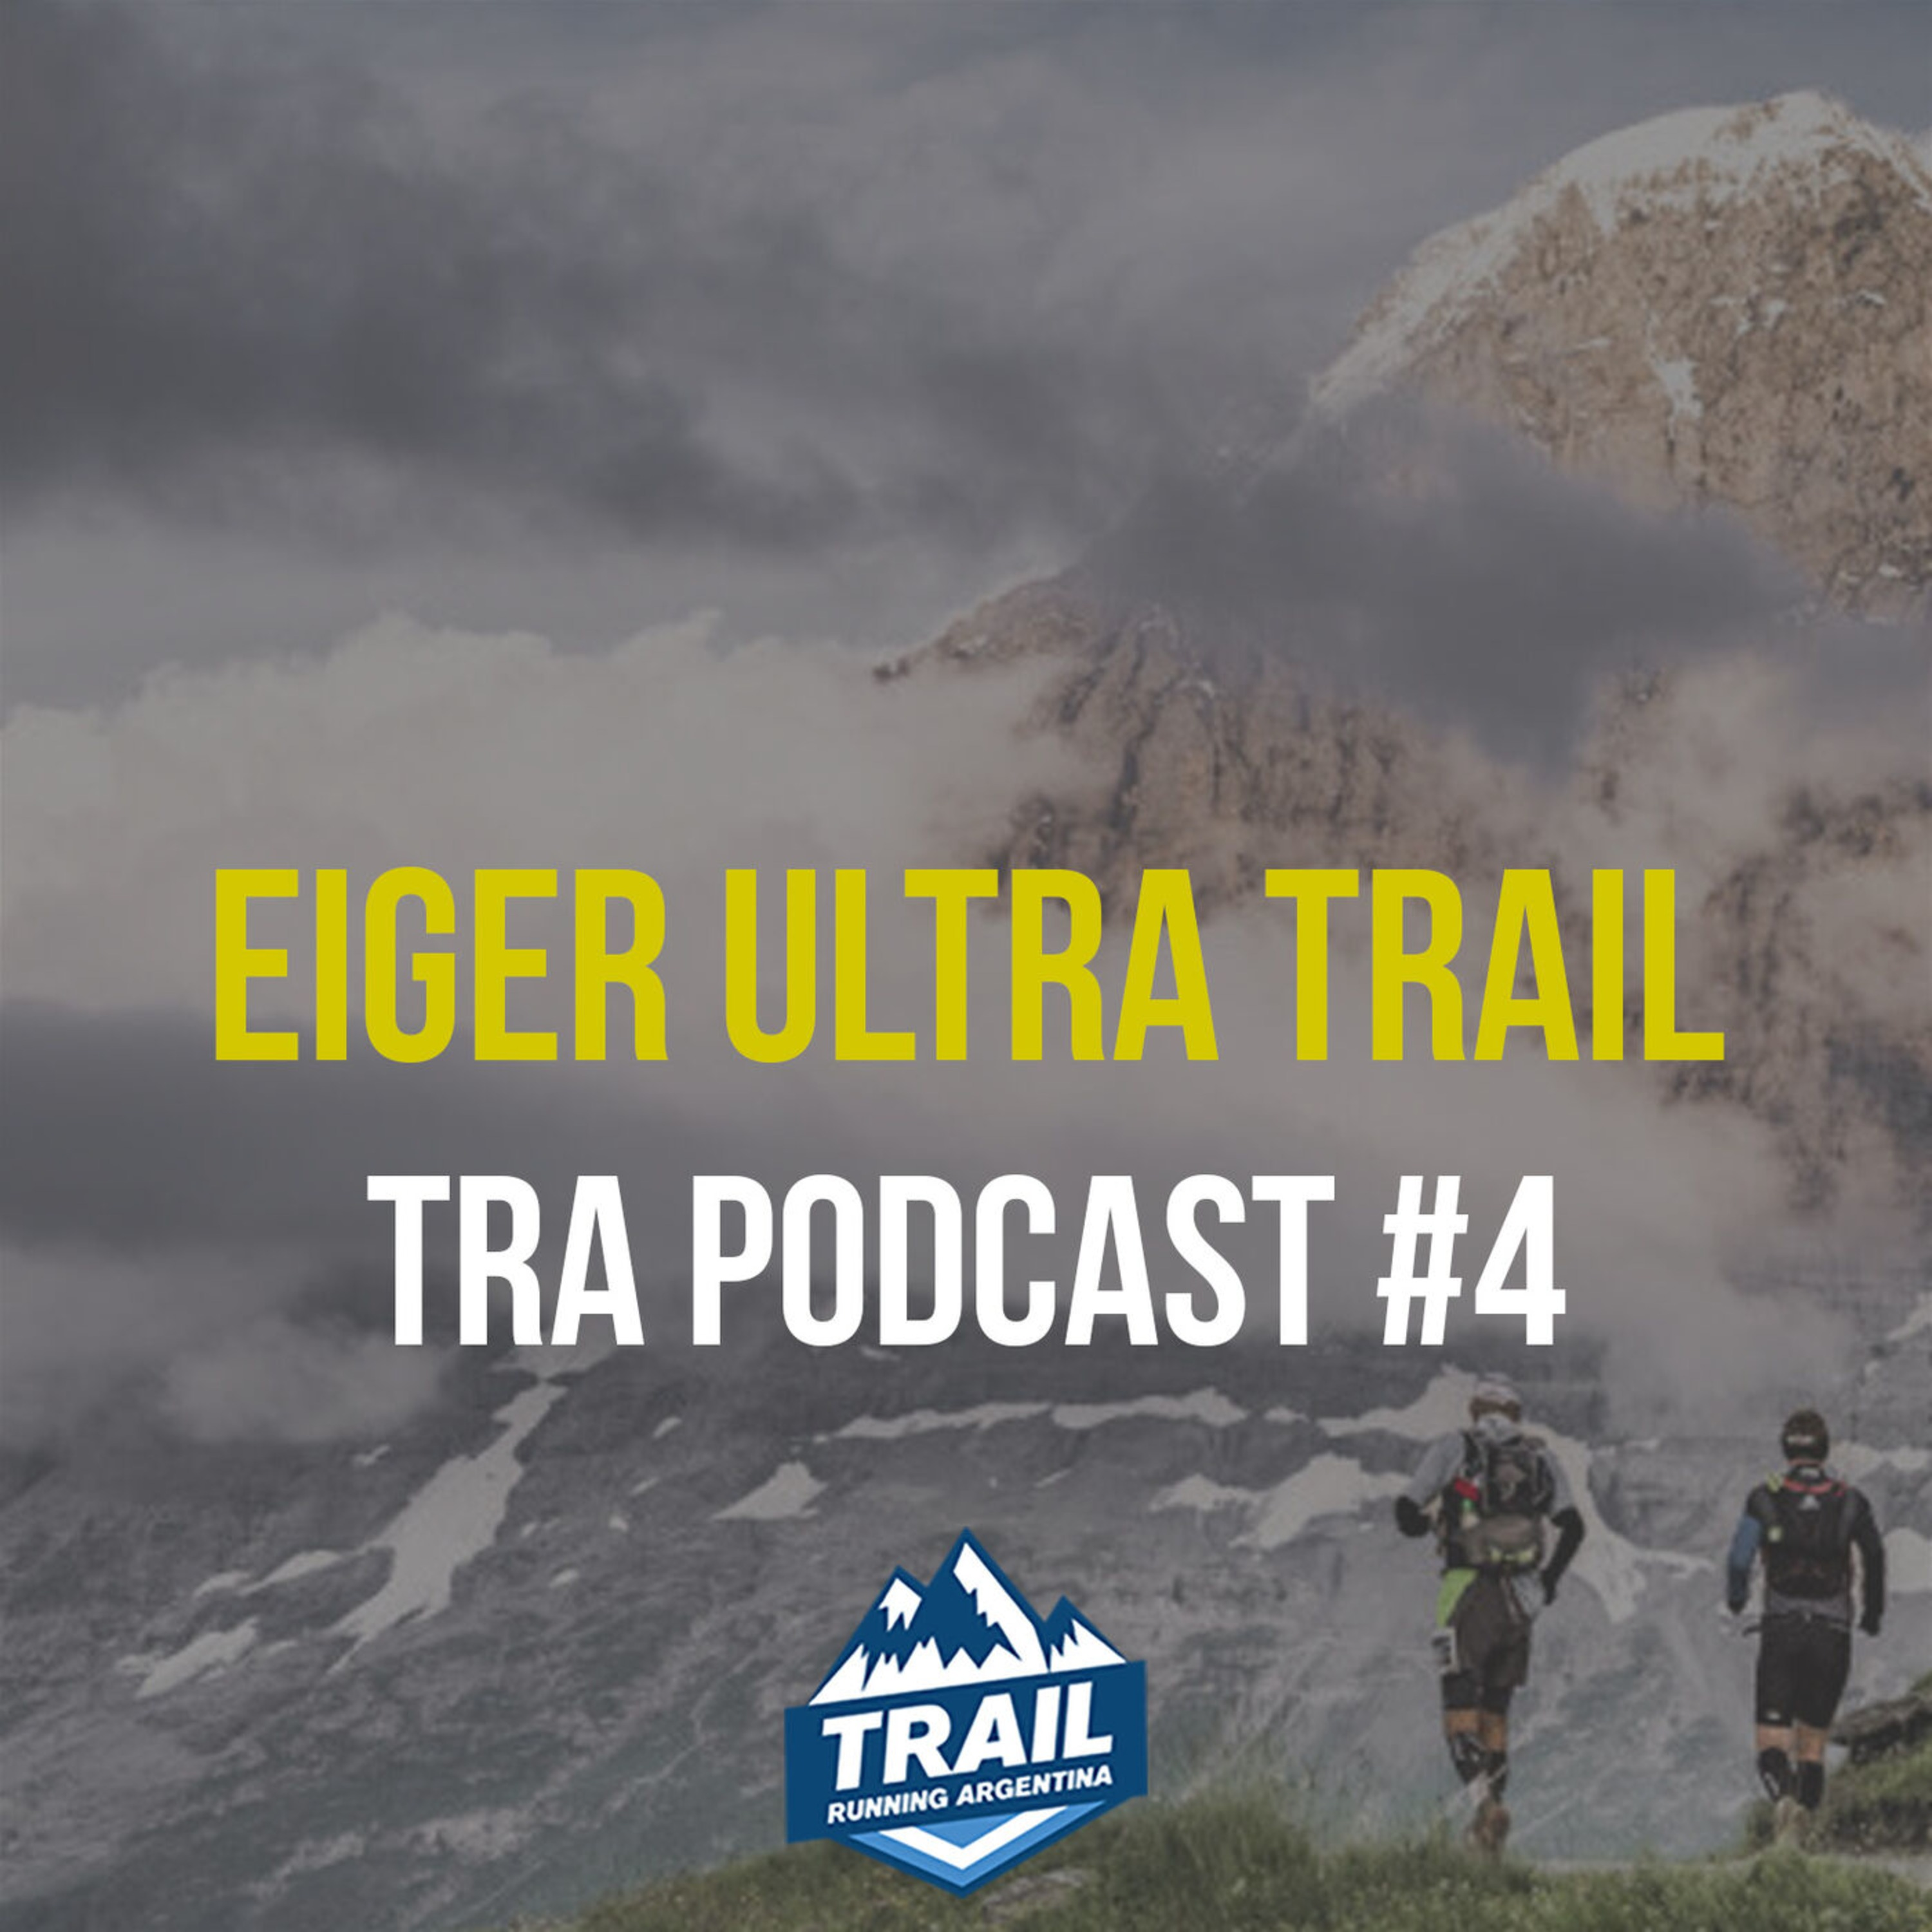 Eiger Ultra Trail | TRA Podcast #4